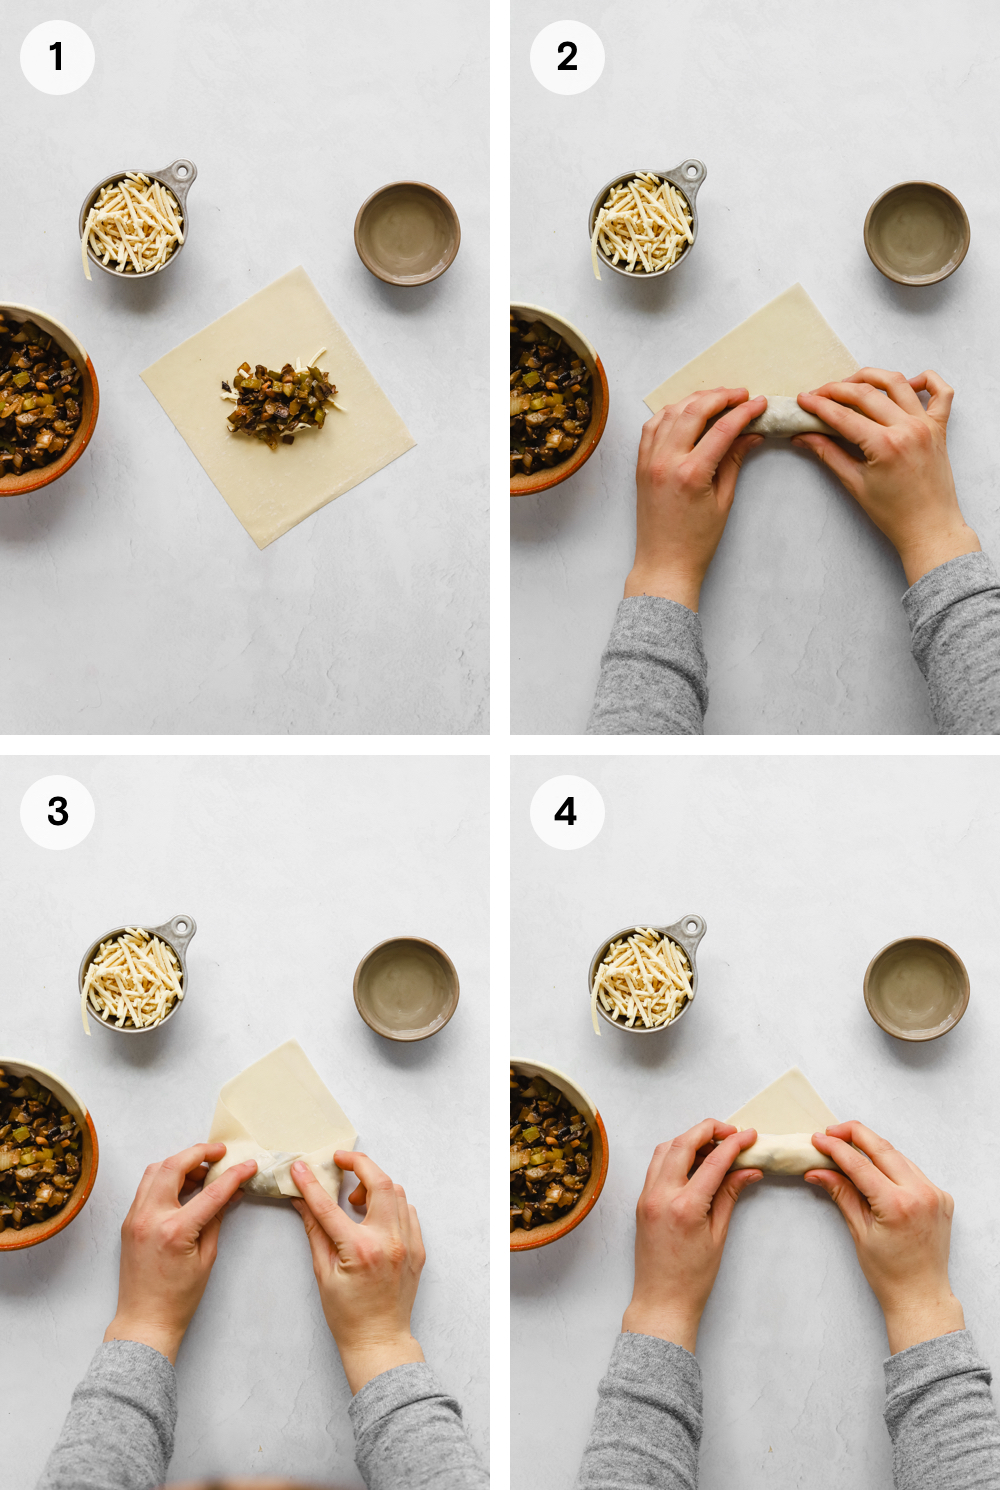 How to fold egg rolls